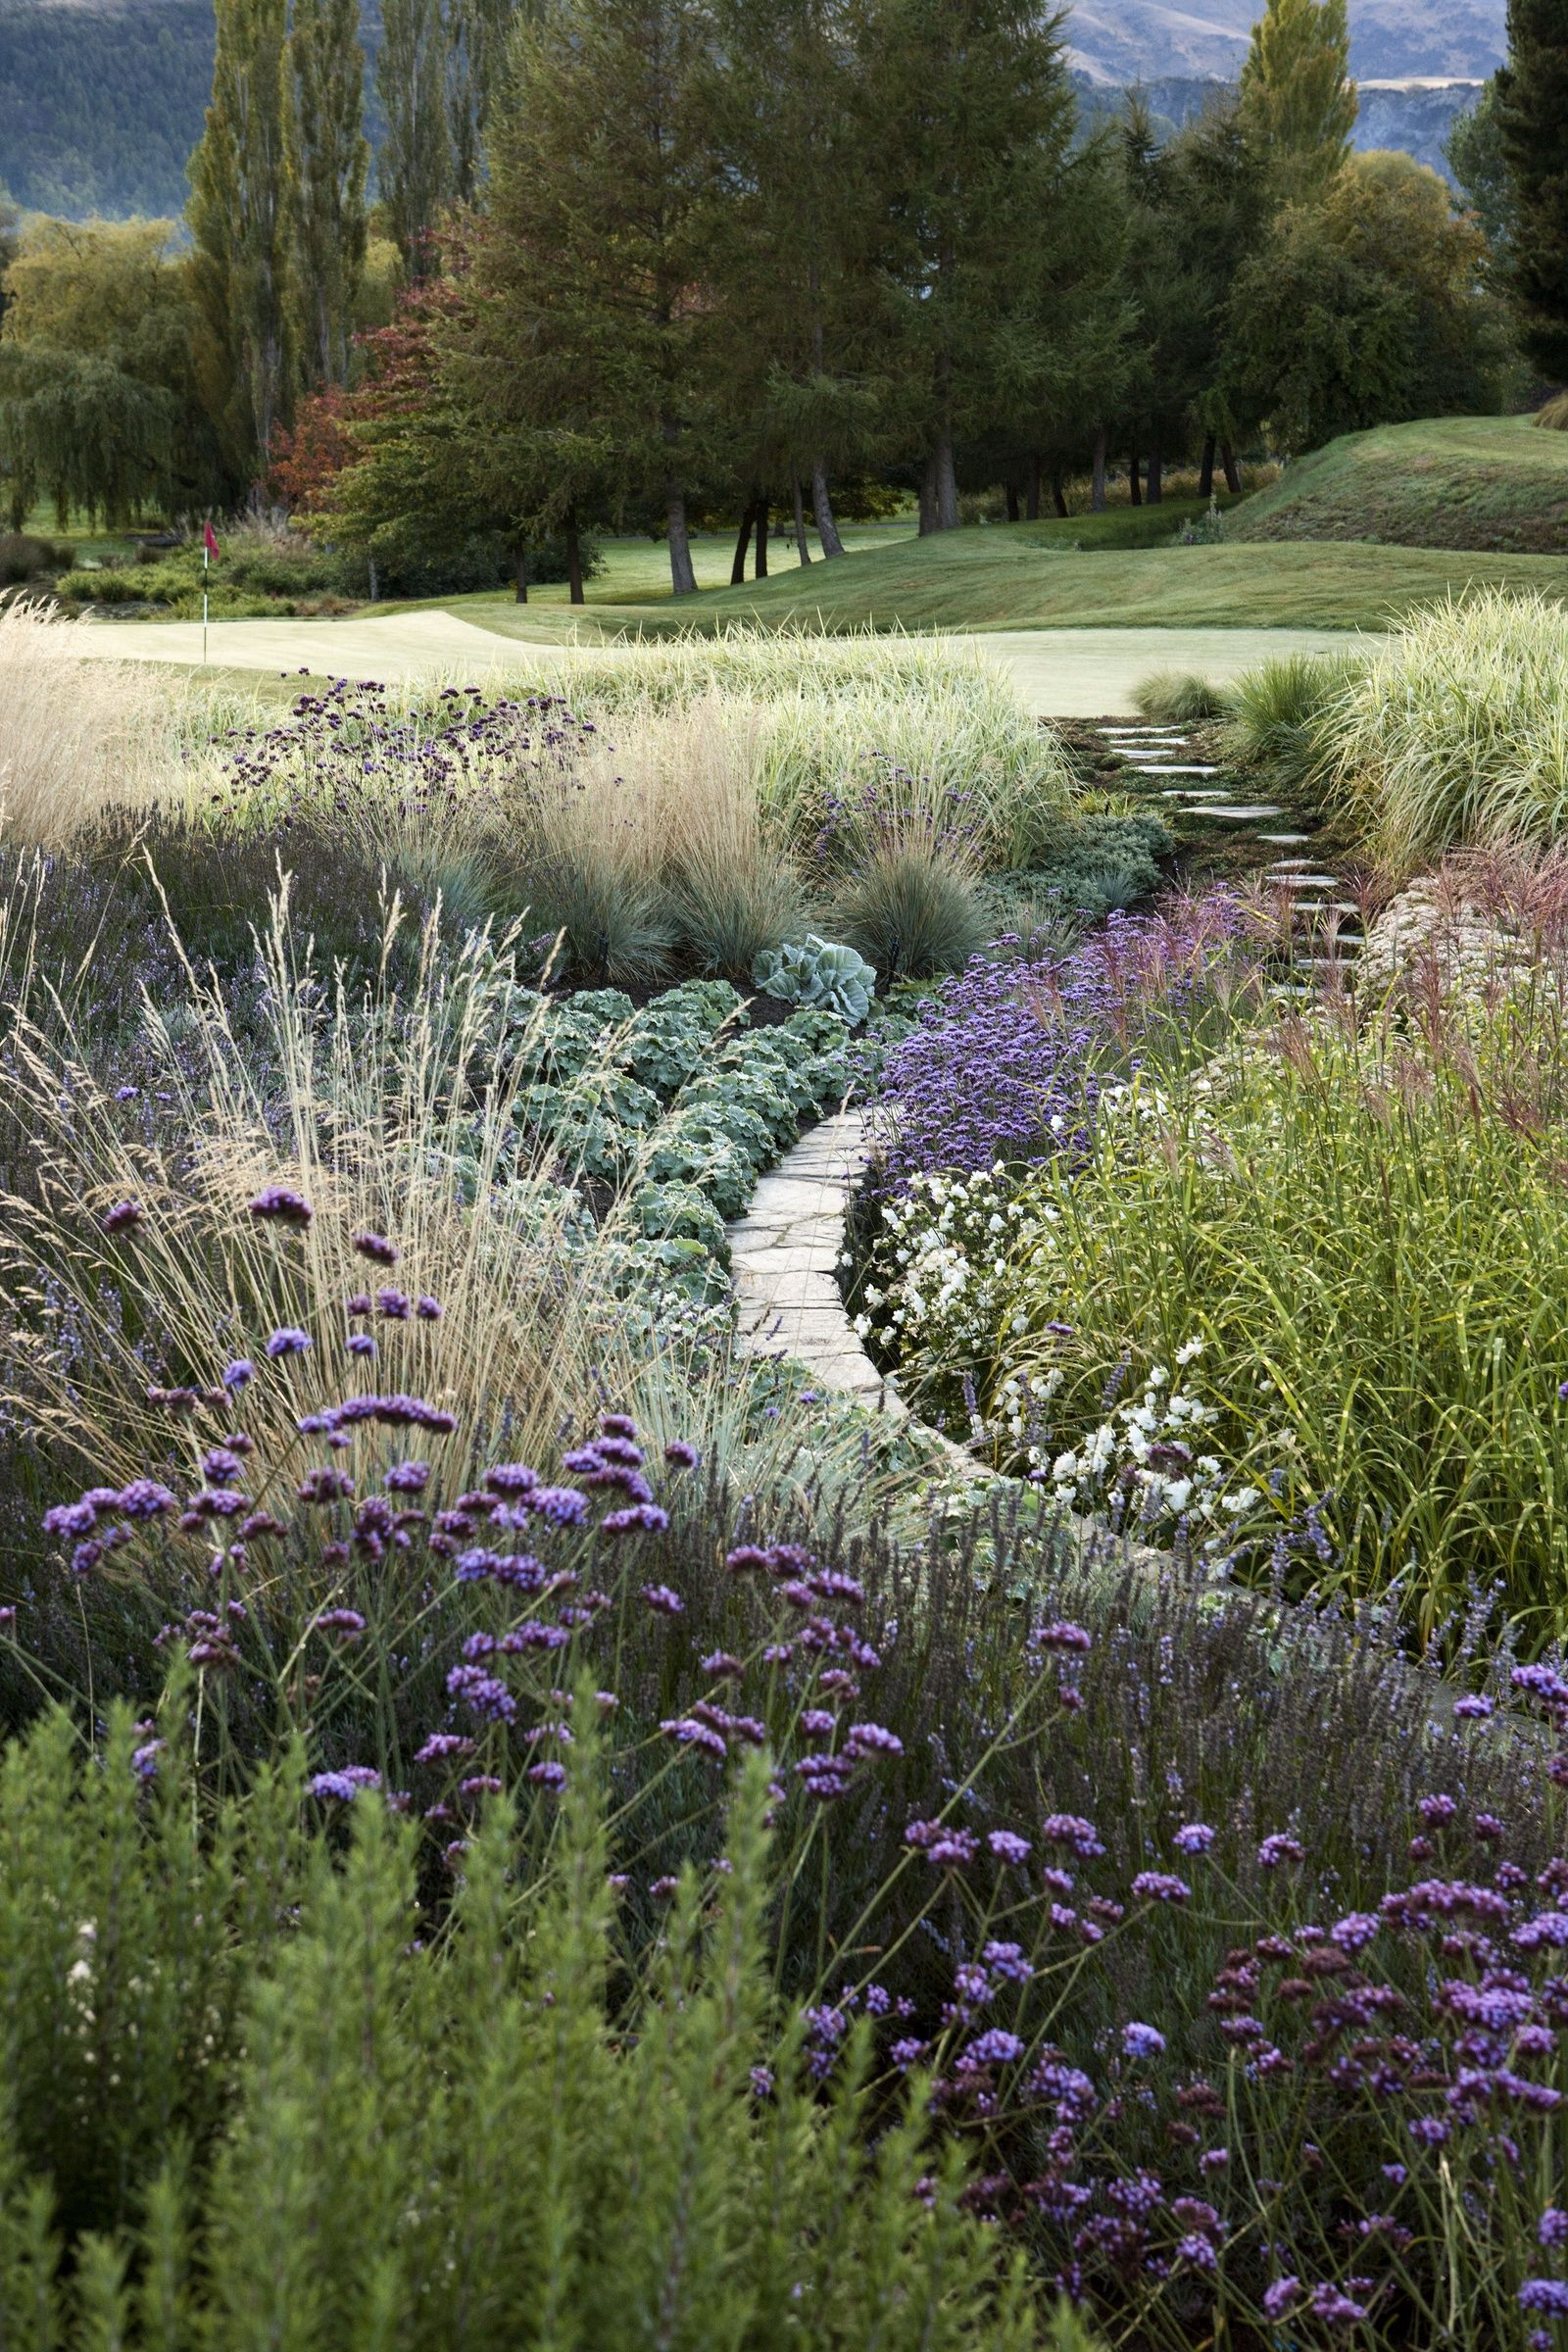 The Curve Just Adds To The Beautiful Tapestry Of Perennials Int His Landscape Garden Landscape Design Landscape Design Garden On A Hill